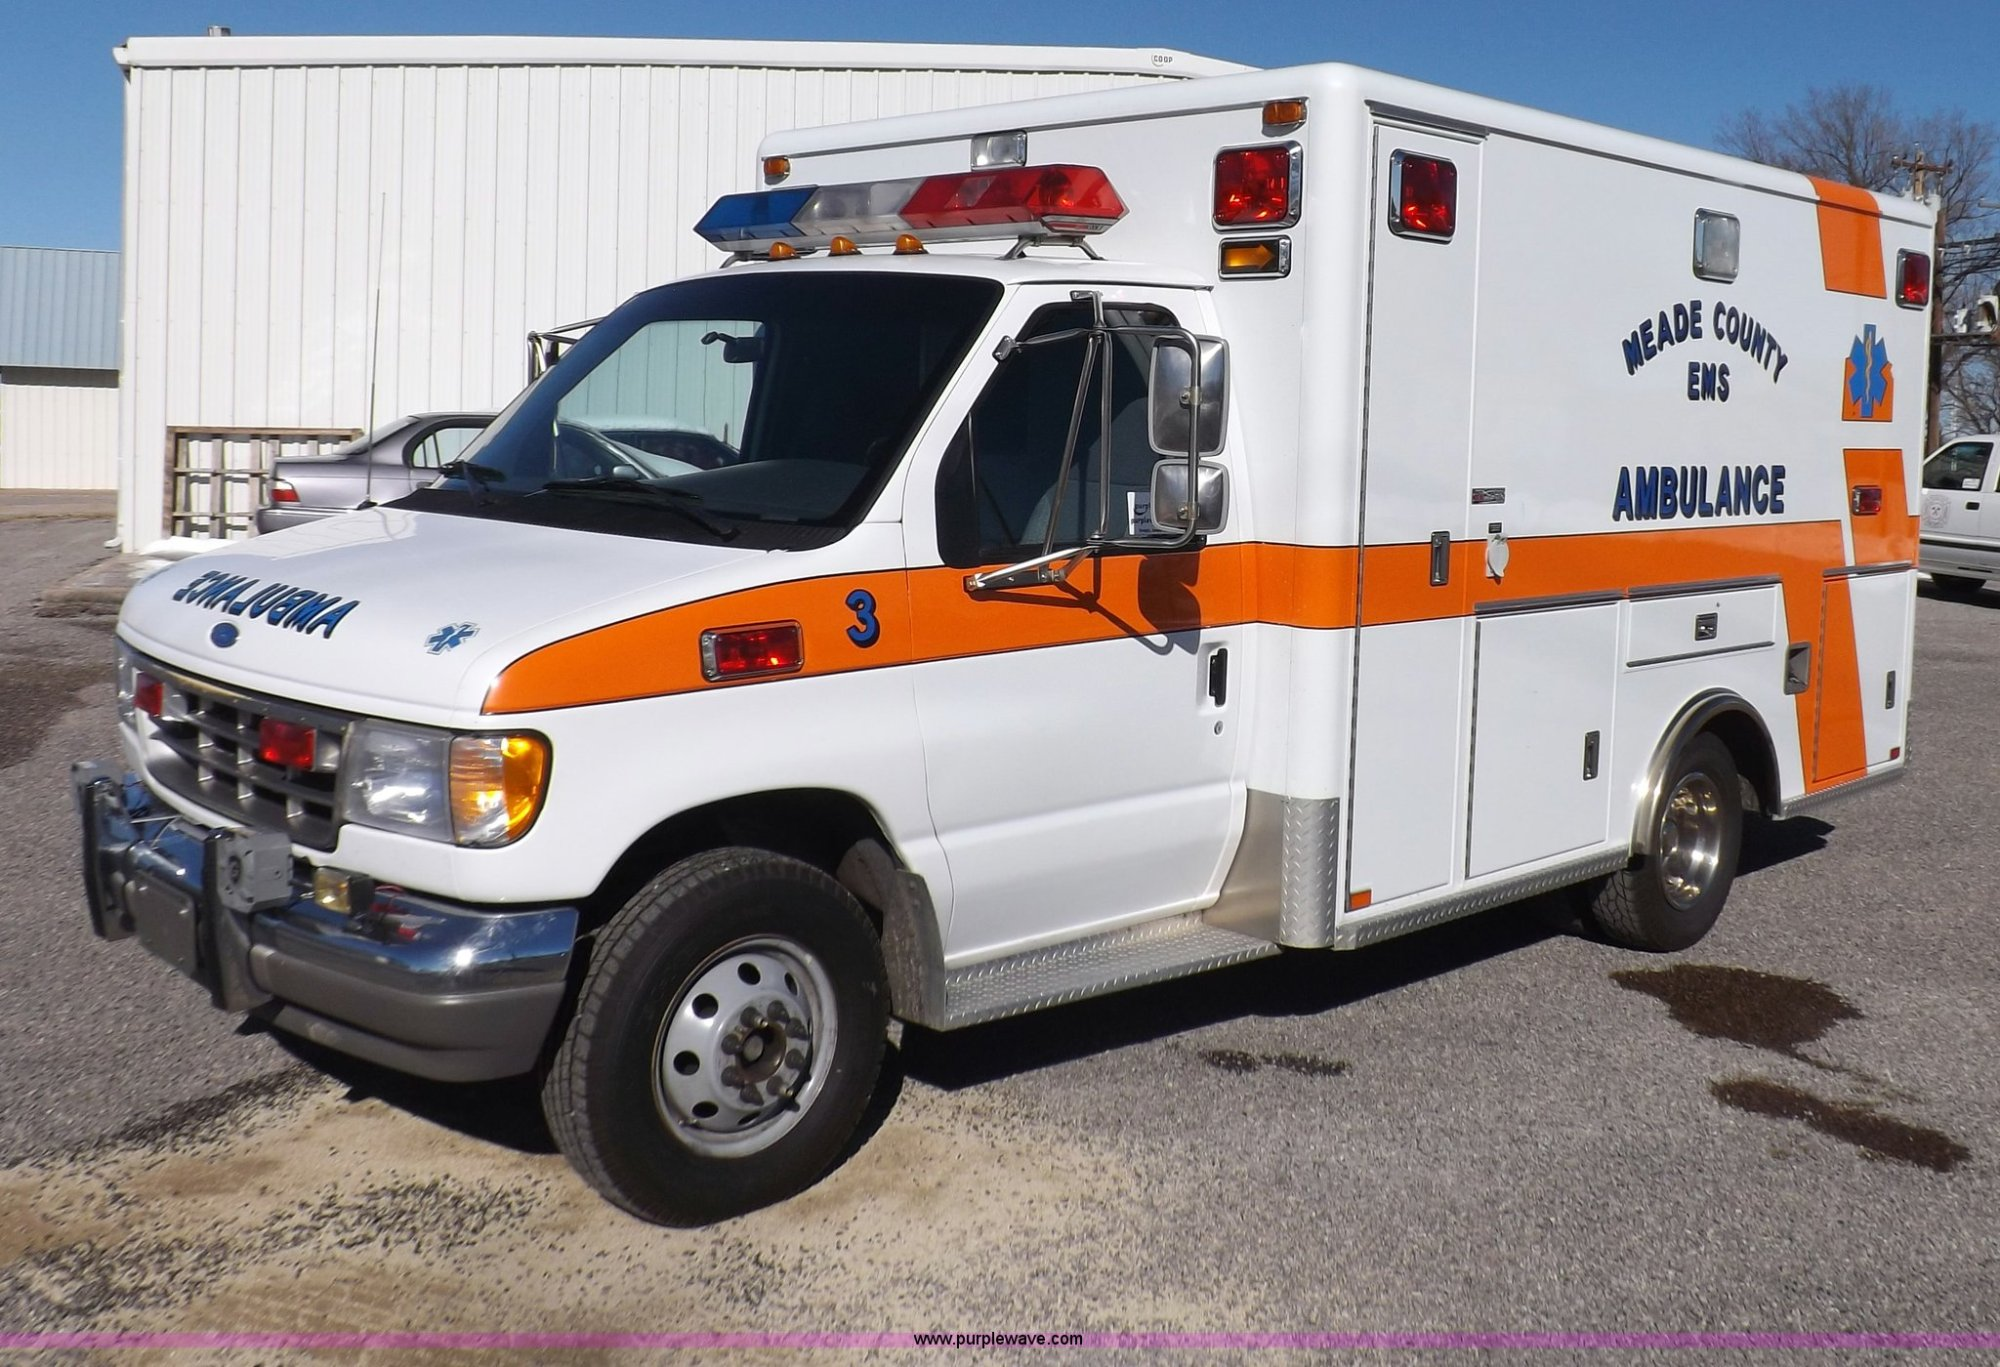 hight resolution of i9244 image for item i9244 1996 ford econoline e350 ambulance